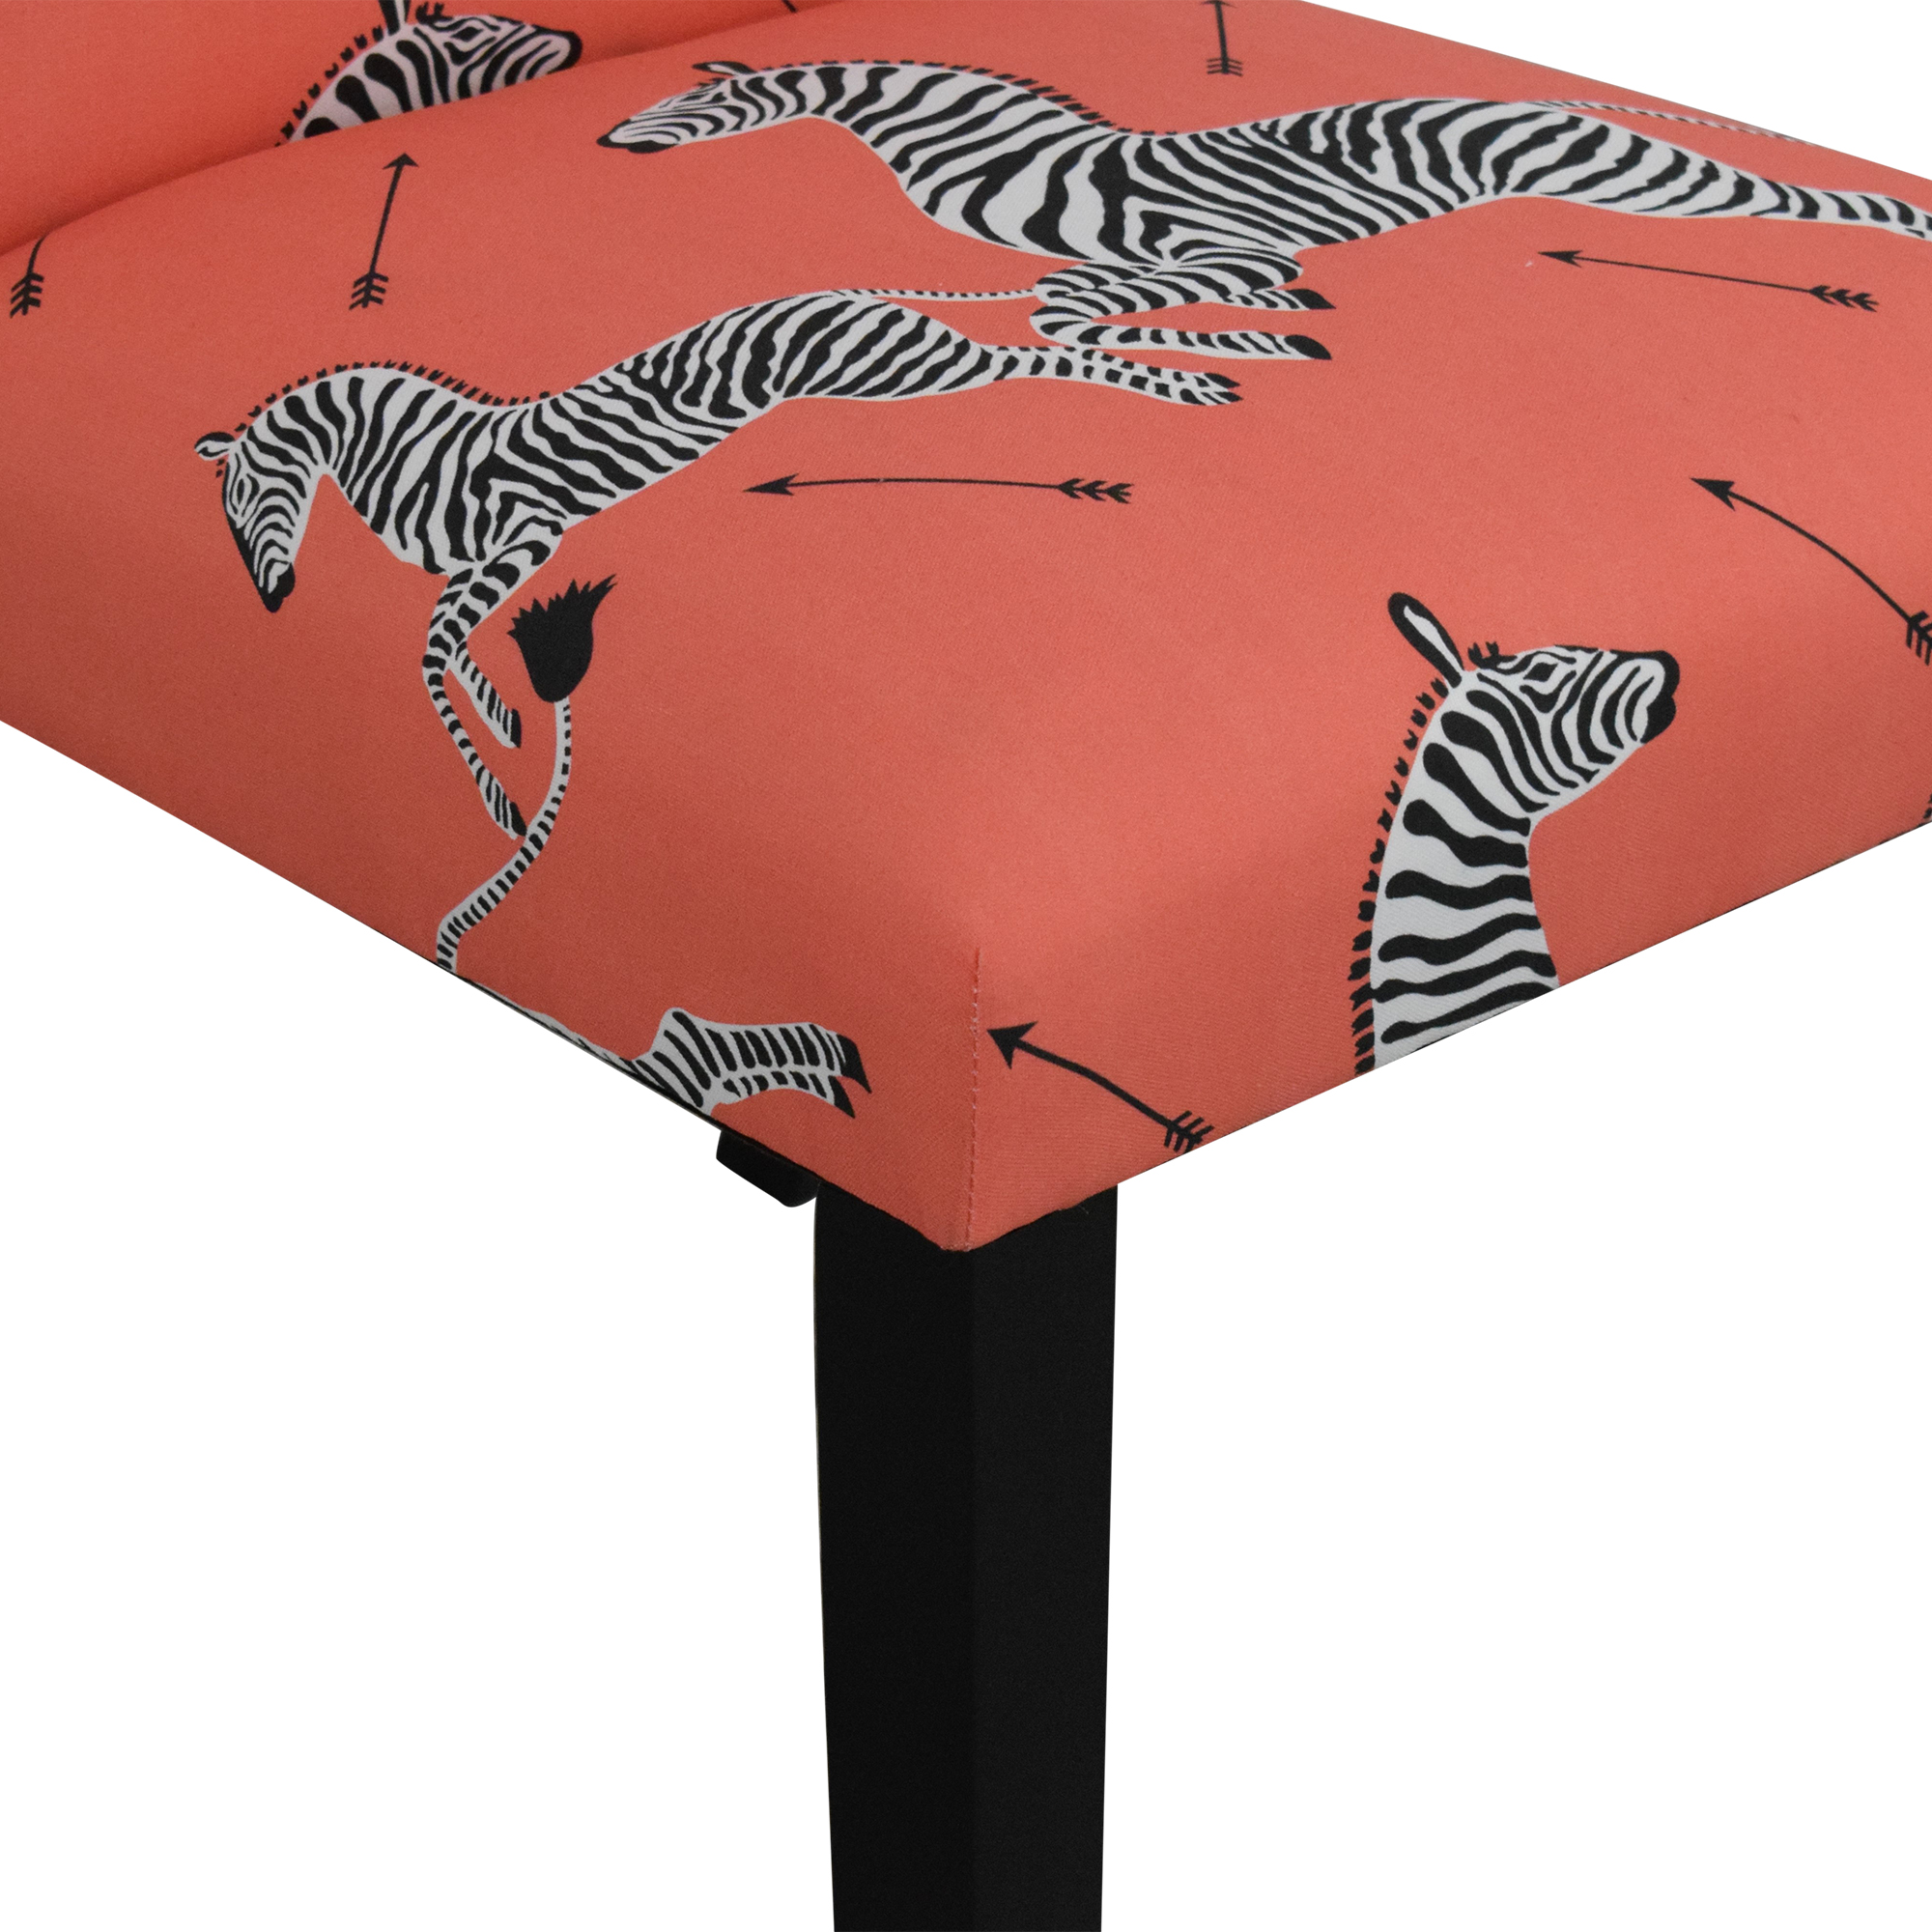 The Inside The Inside Coral Zebra Classic Dining Chair dimensions